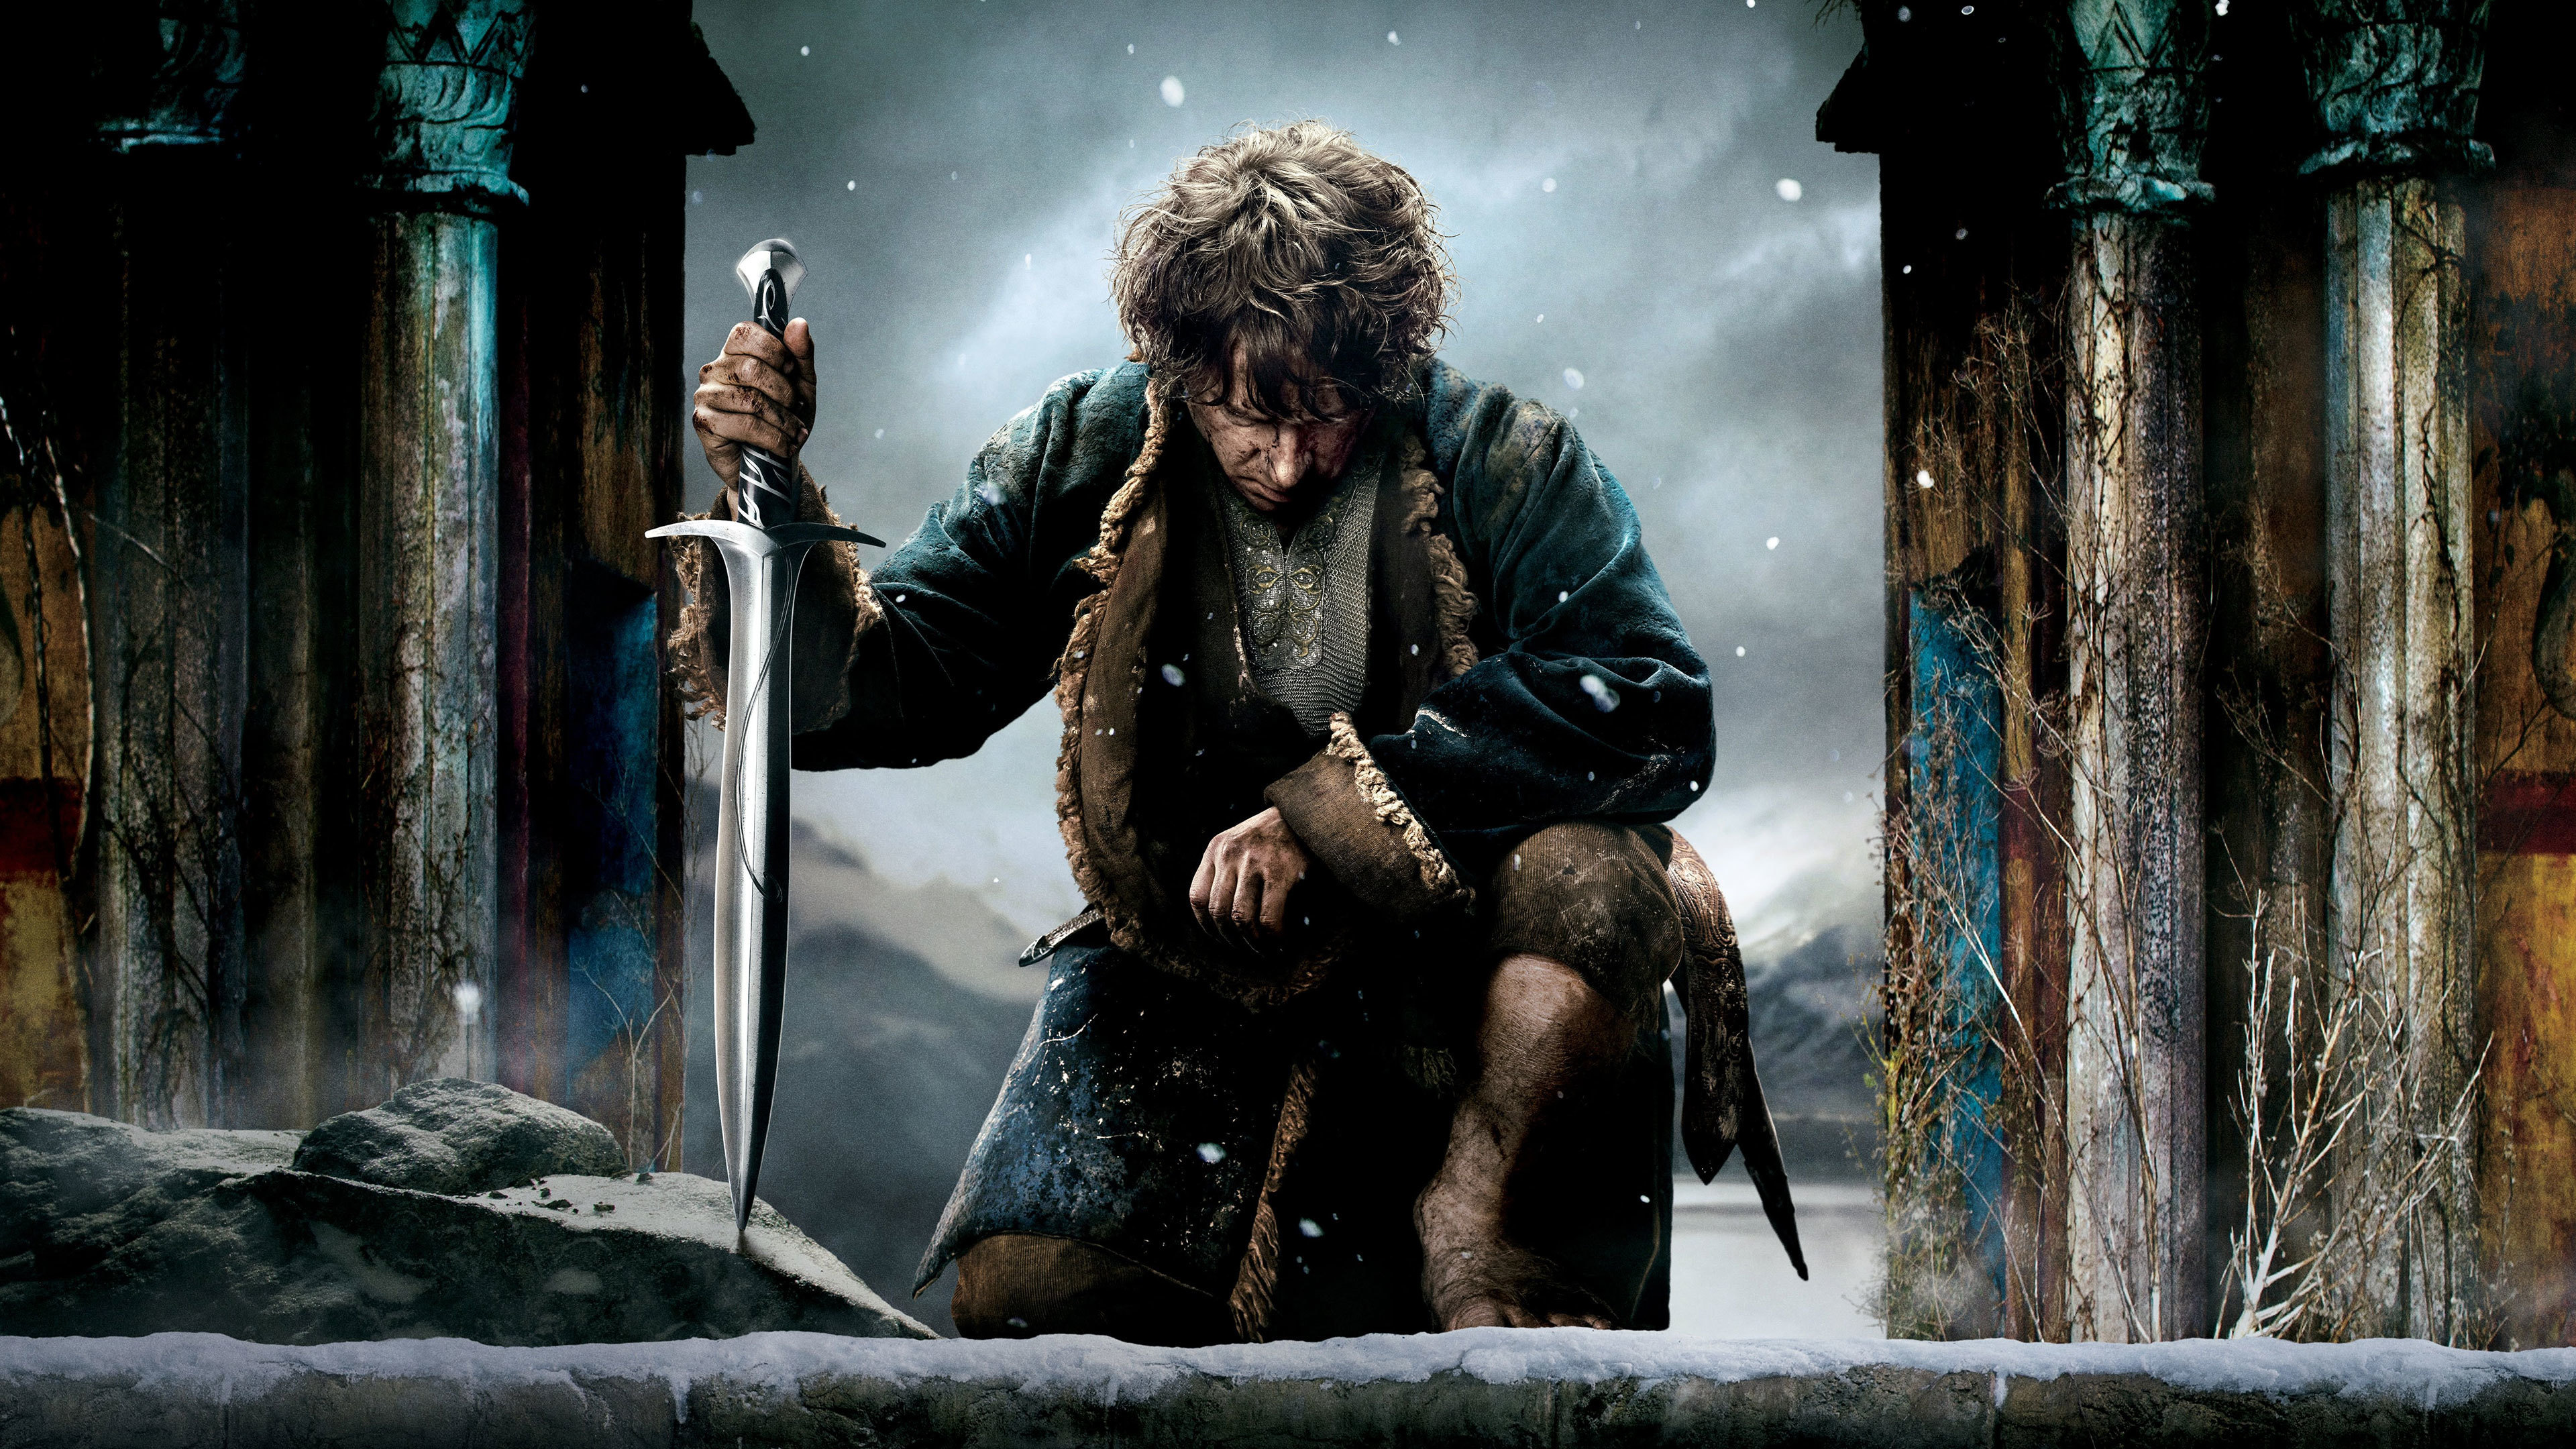 The Hobbit: The Battle Of The Five Armies Wallpapers, Pictures, Images